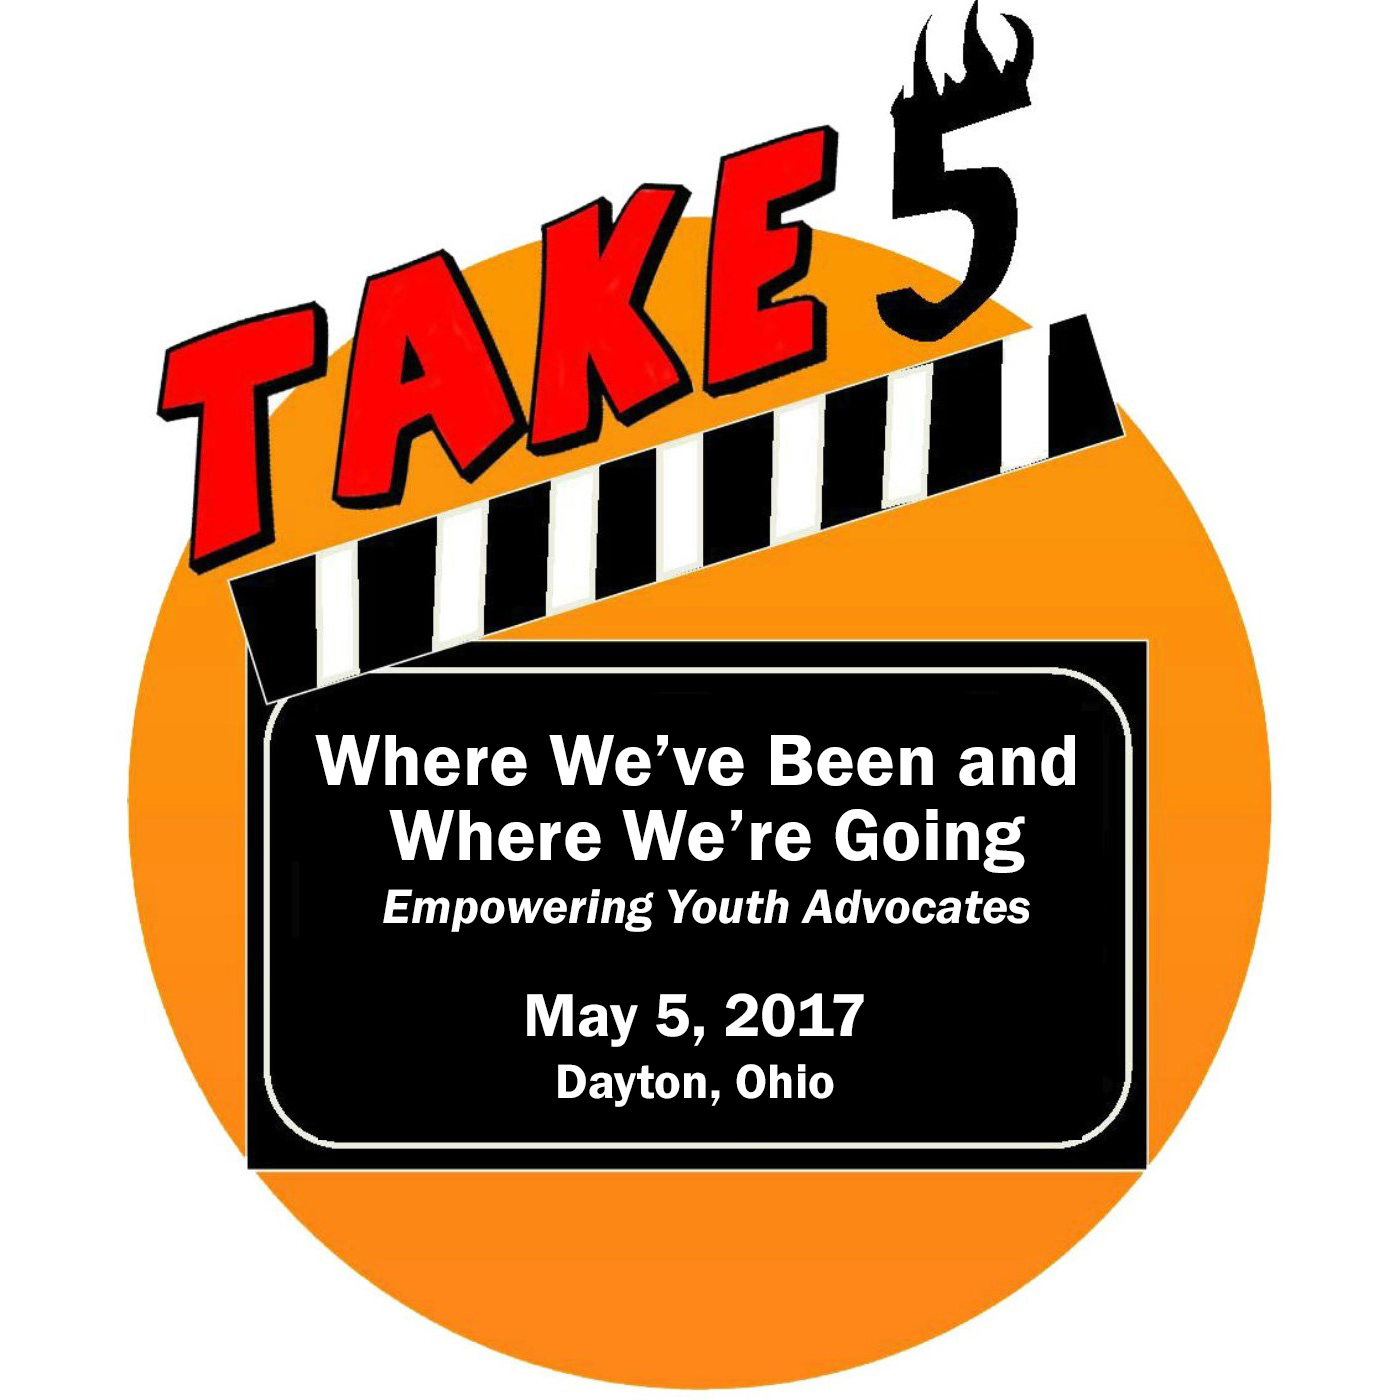 Take-5 Logo - Where We've Been and Where We're Going - Empowering Youth Advocates - May 5, 2017, Dayton, OH